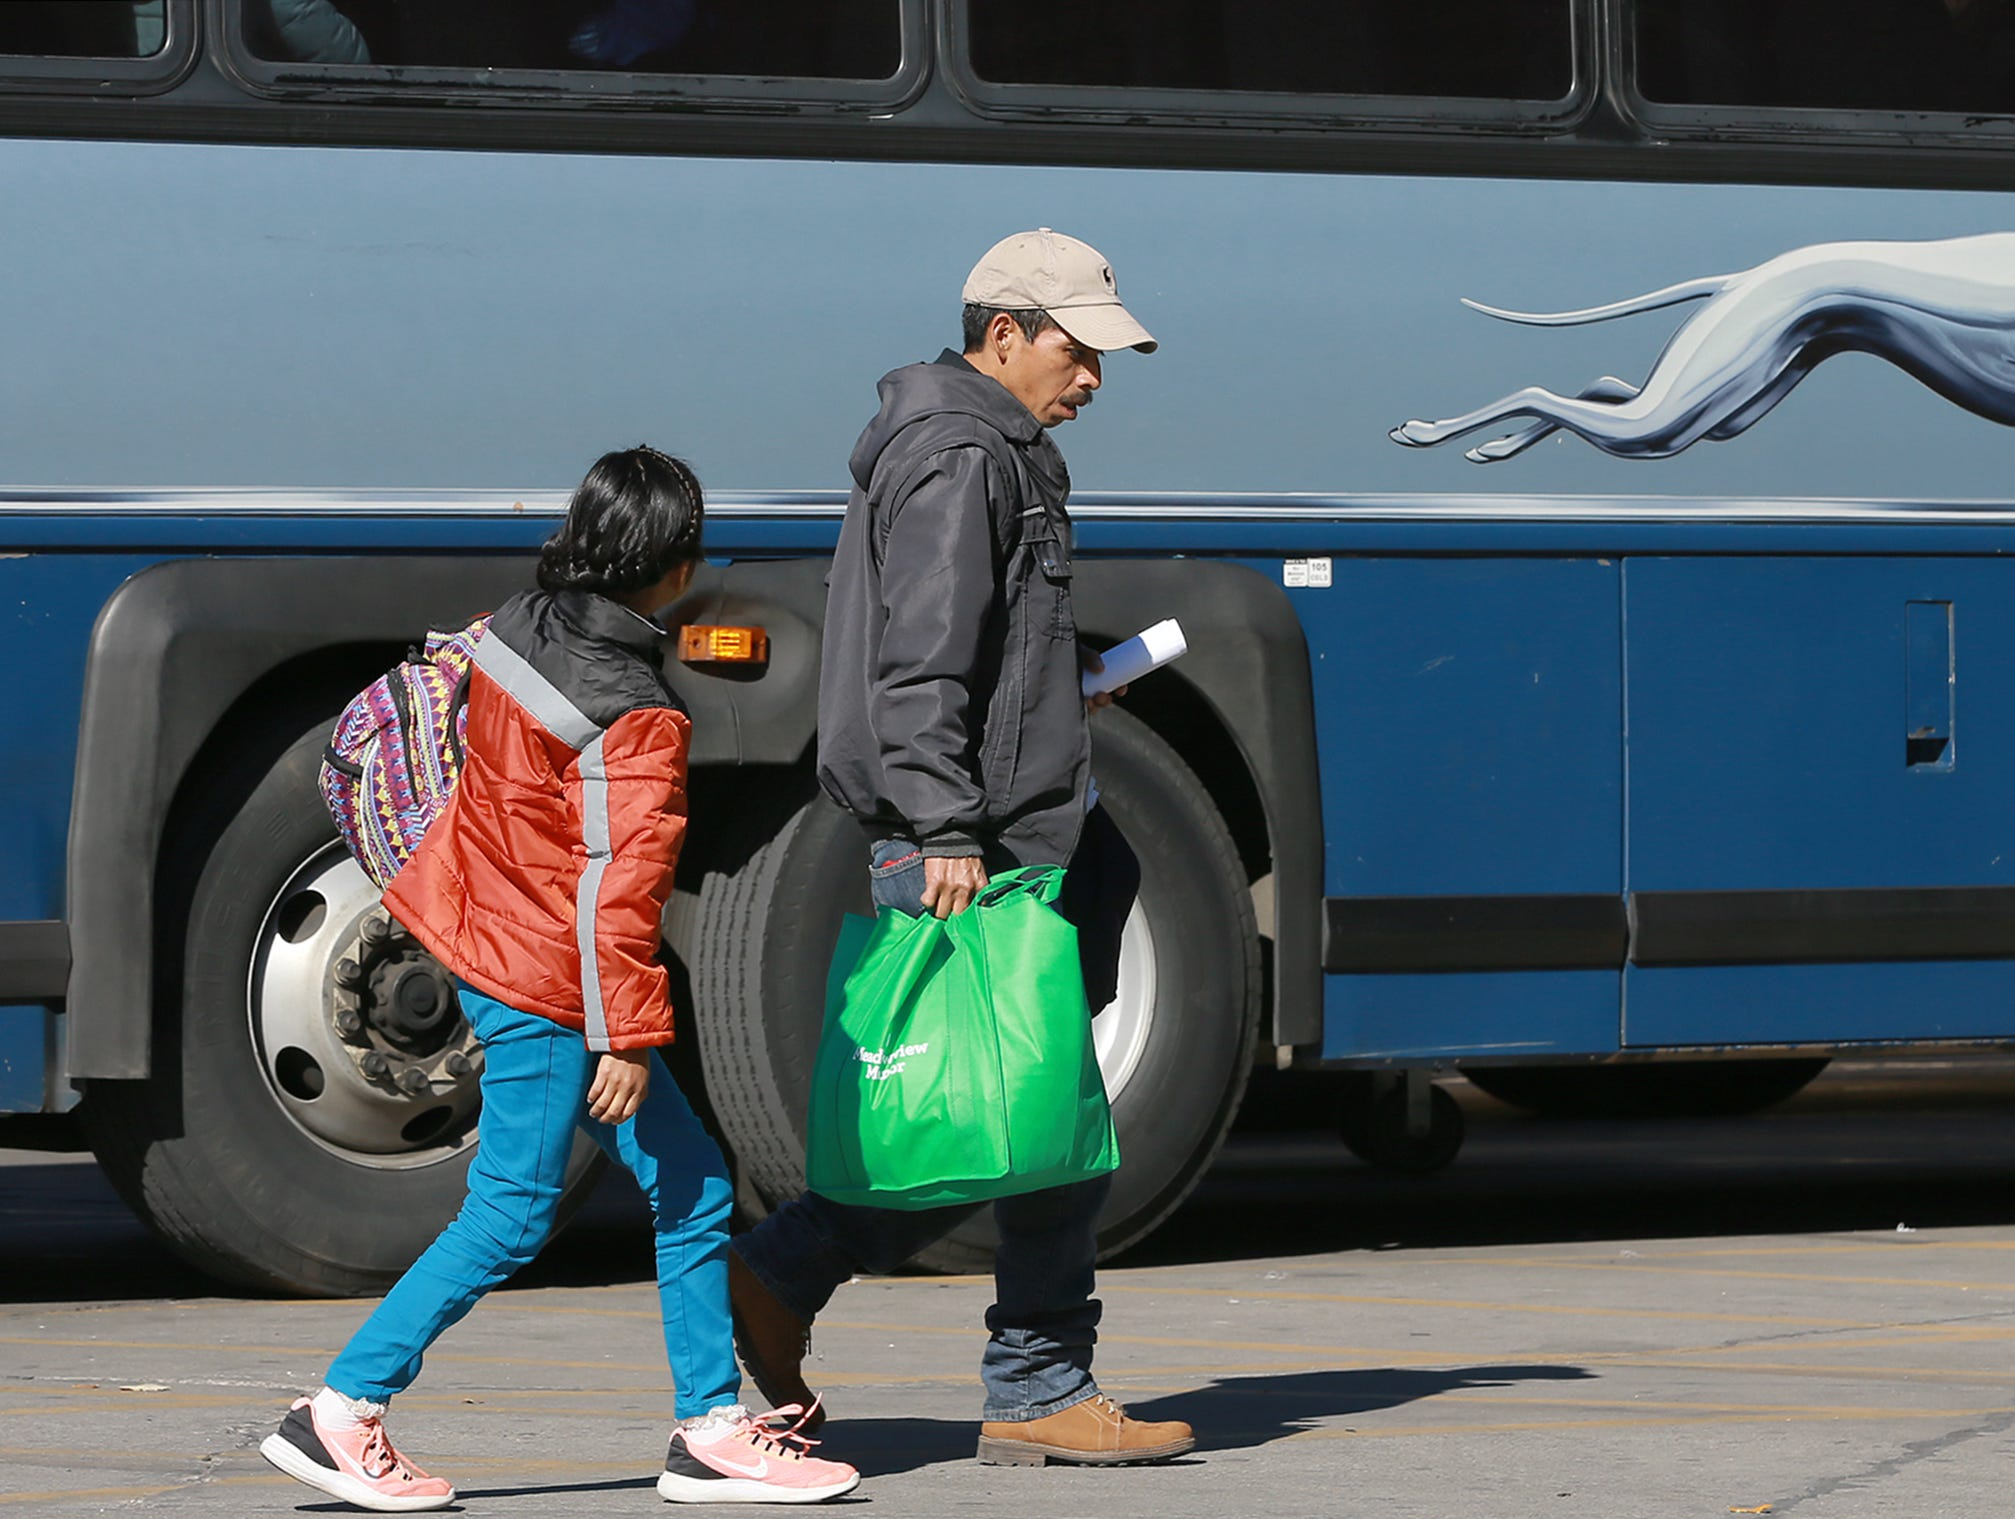 Hundreds of asylum seekers were dropped off Sunday night at the Greyhound station in downtown El Paso before accommodations were made by Annunciation House. Many of the migrants were taken Monday morning back to the Greyhound station to arrange for travel.